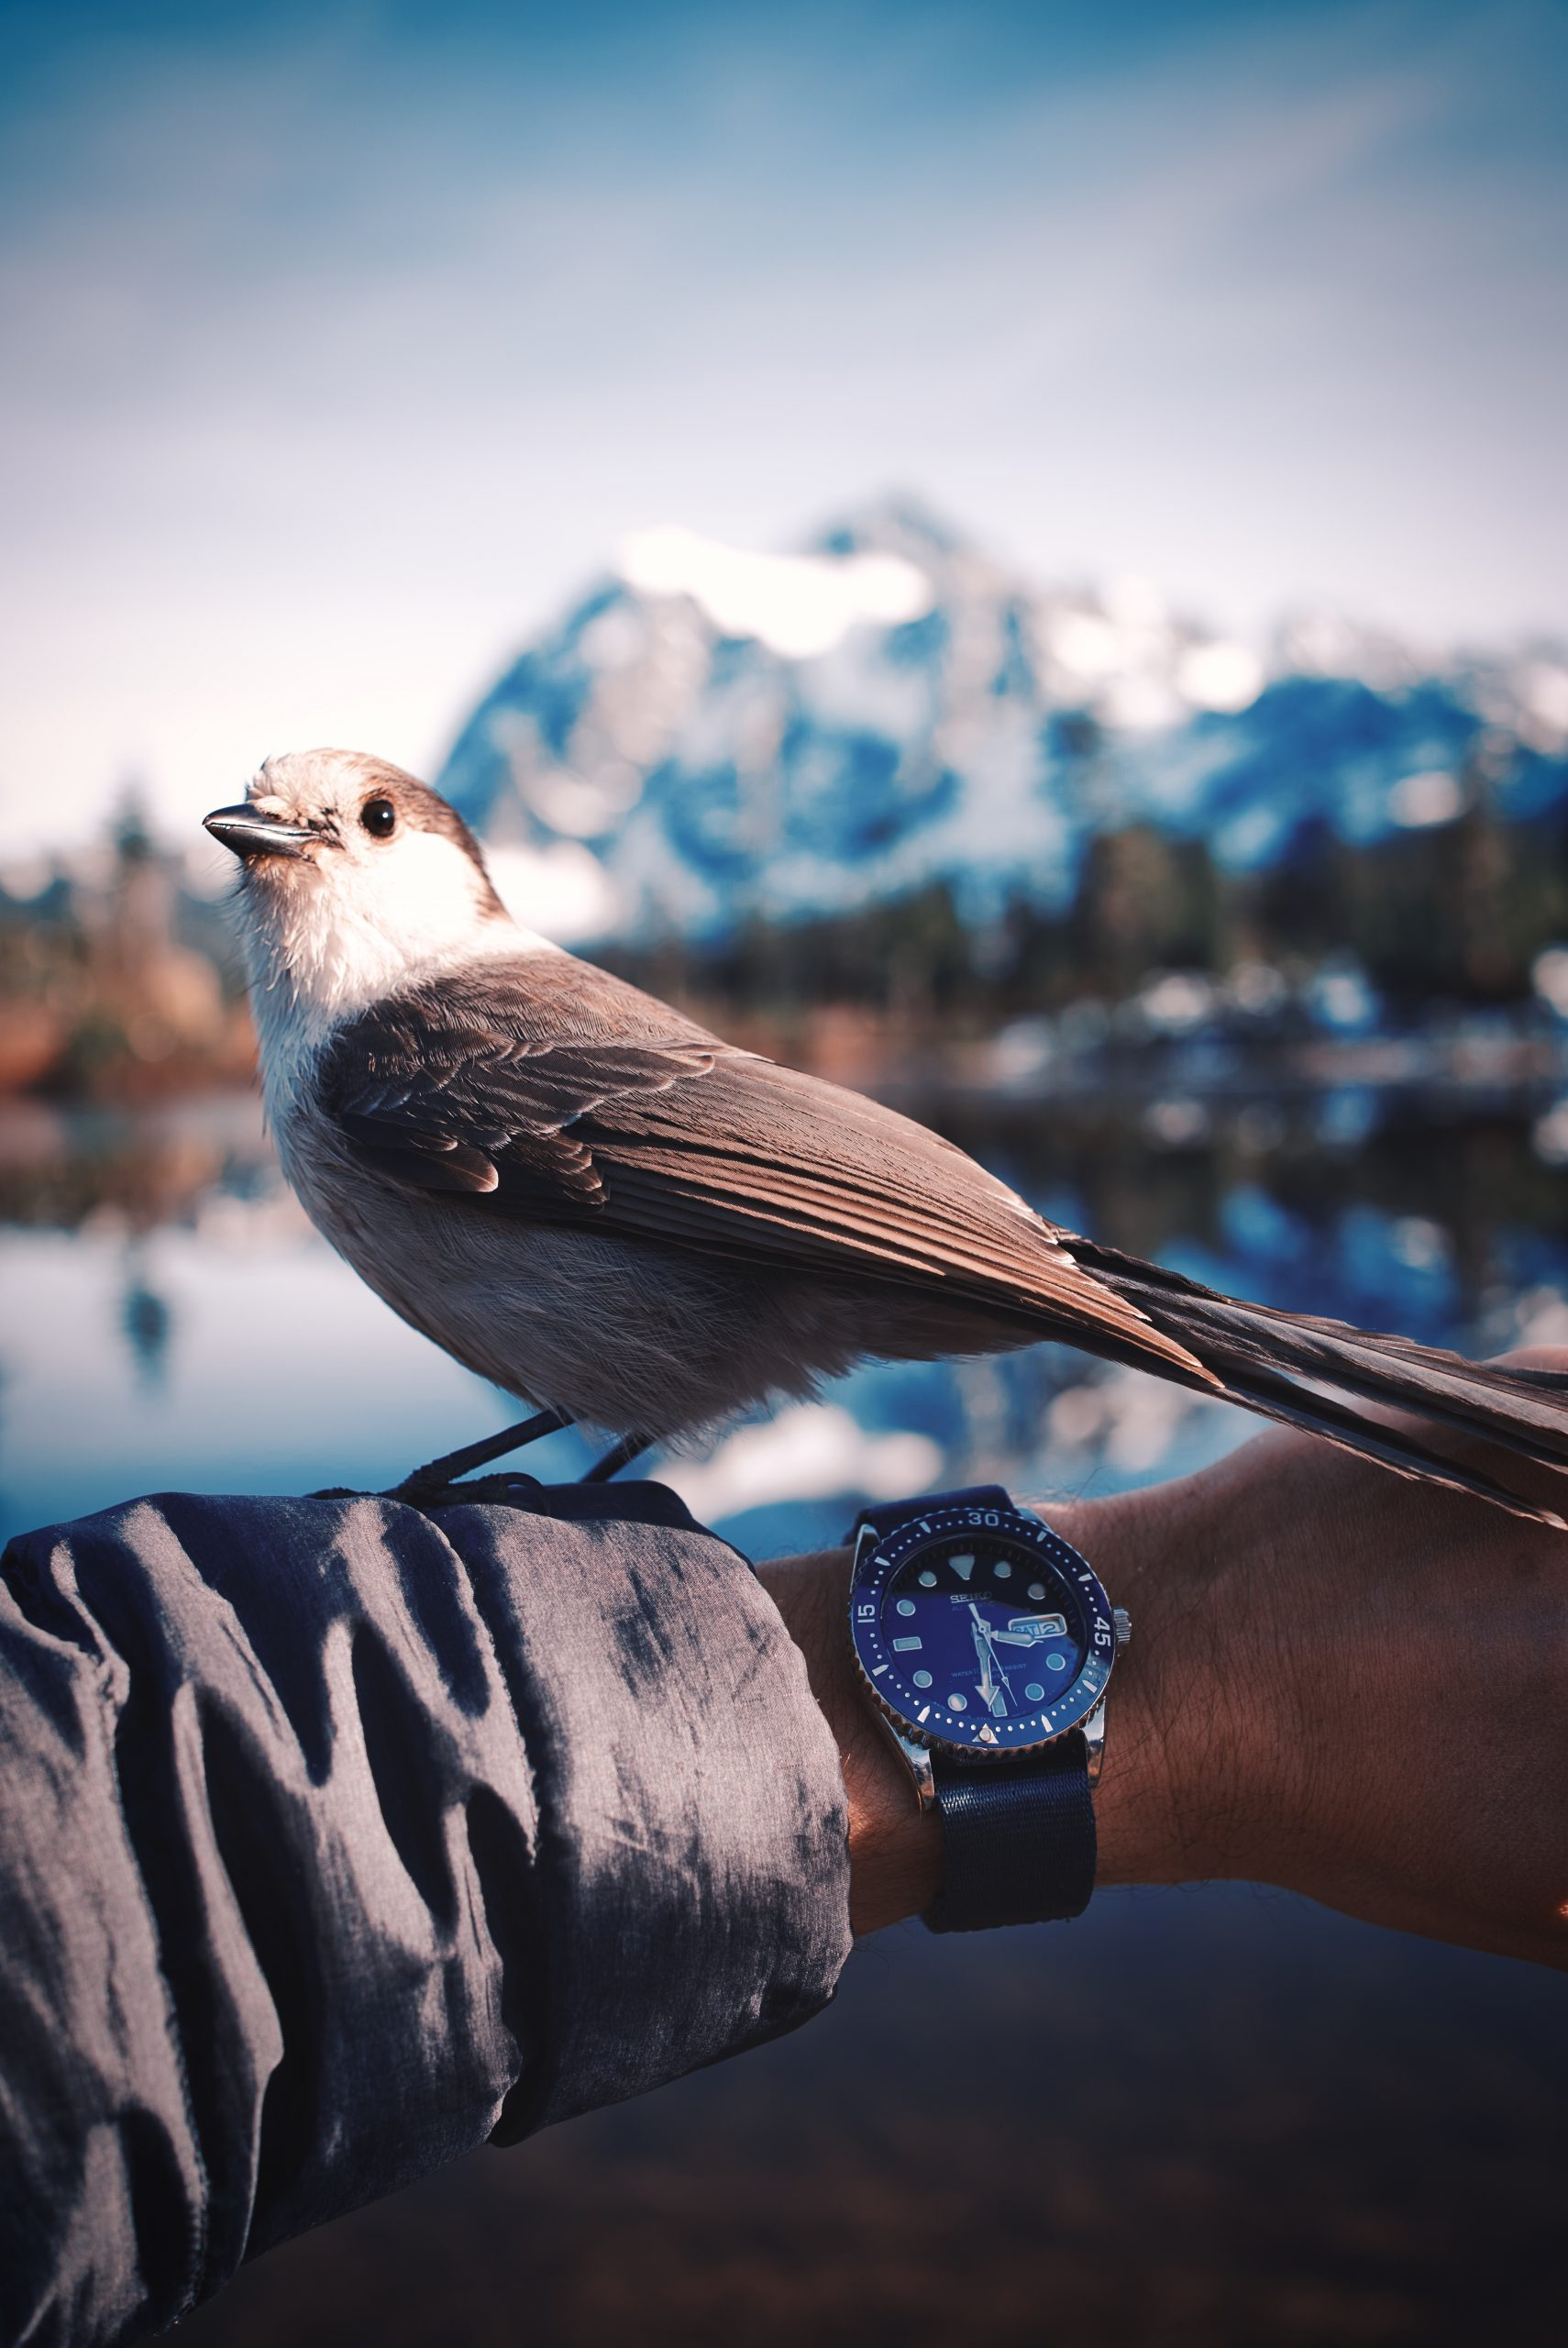 Snow jay on top of a grey sleeve, wrist shot with Mt. Shuksan in background